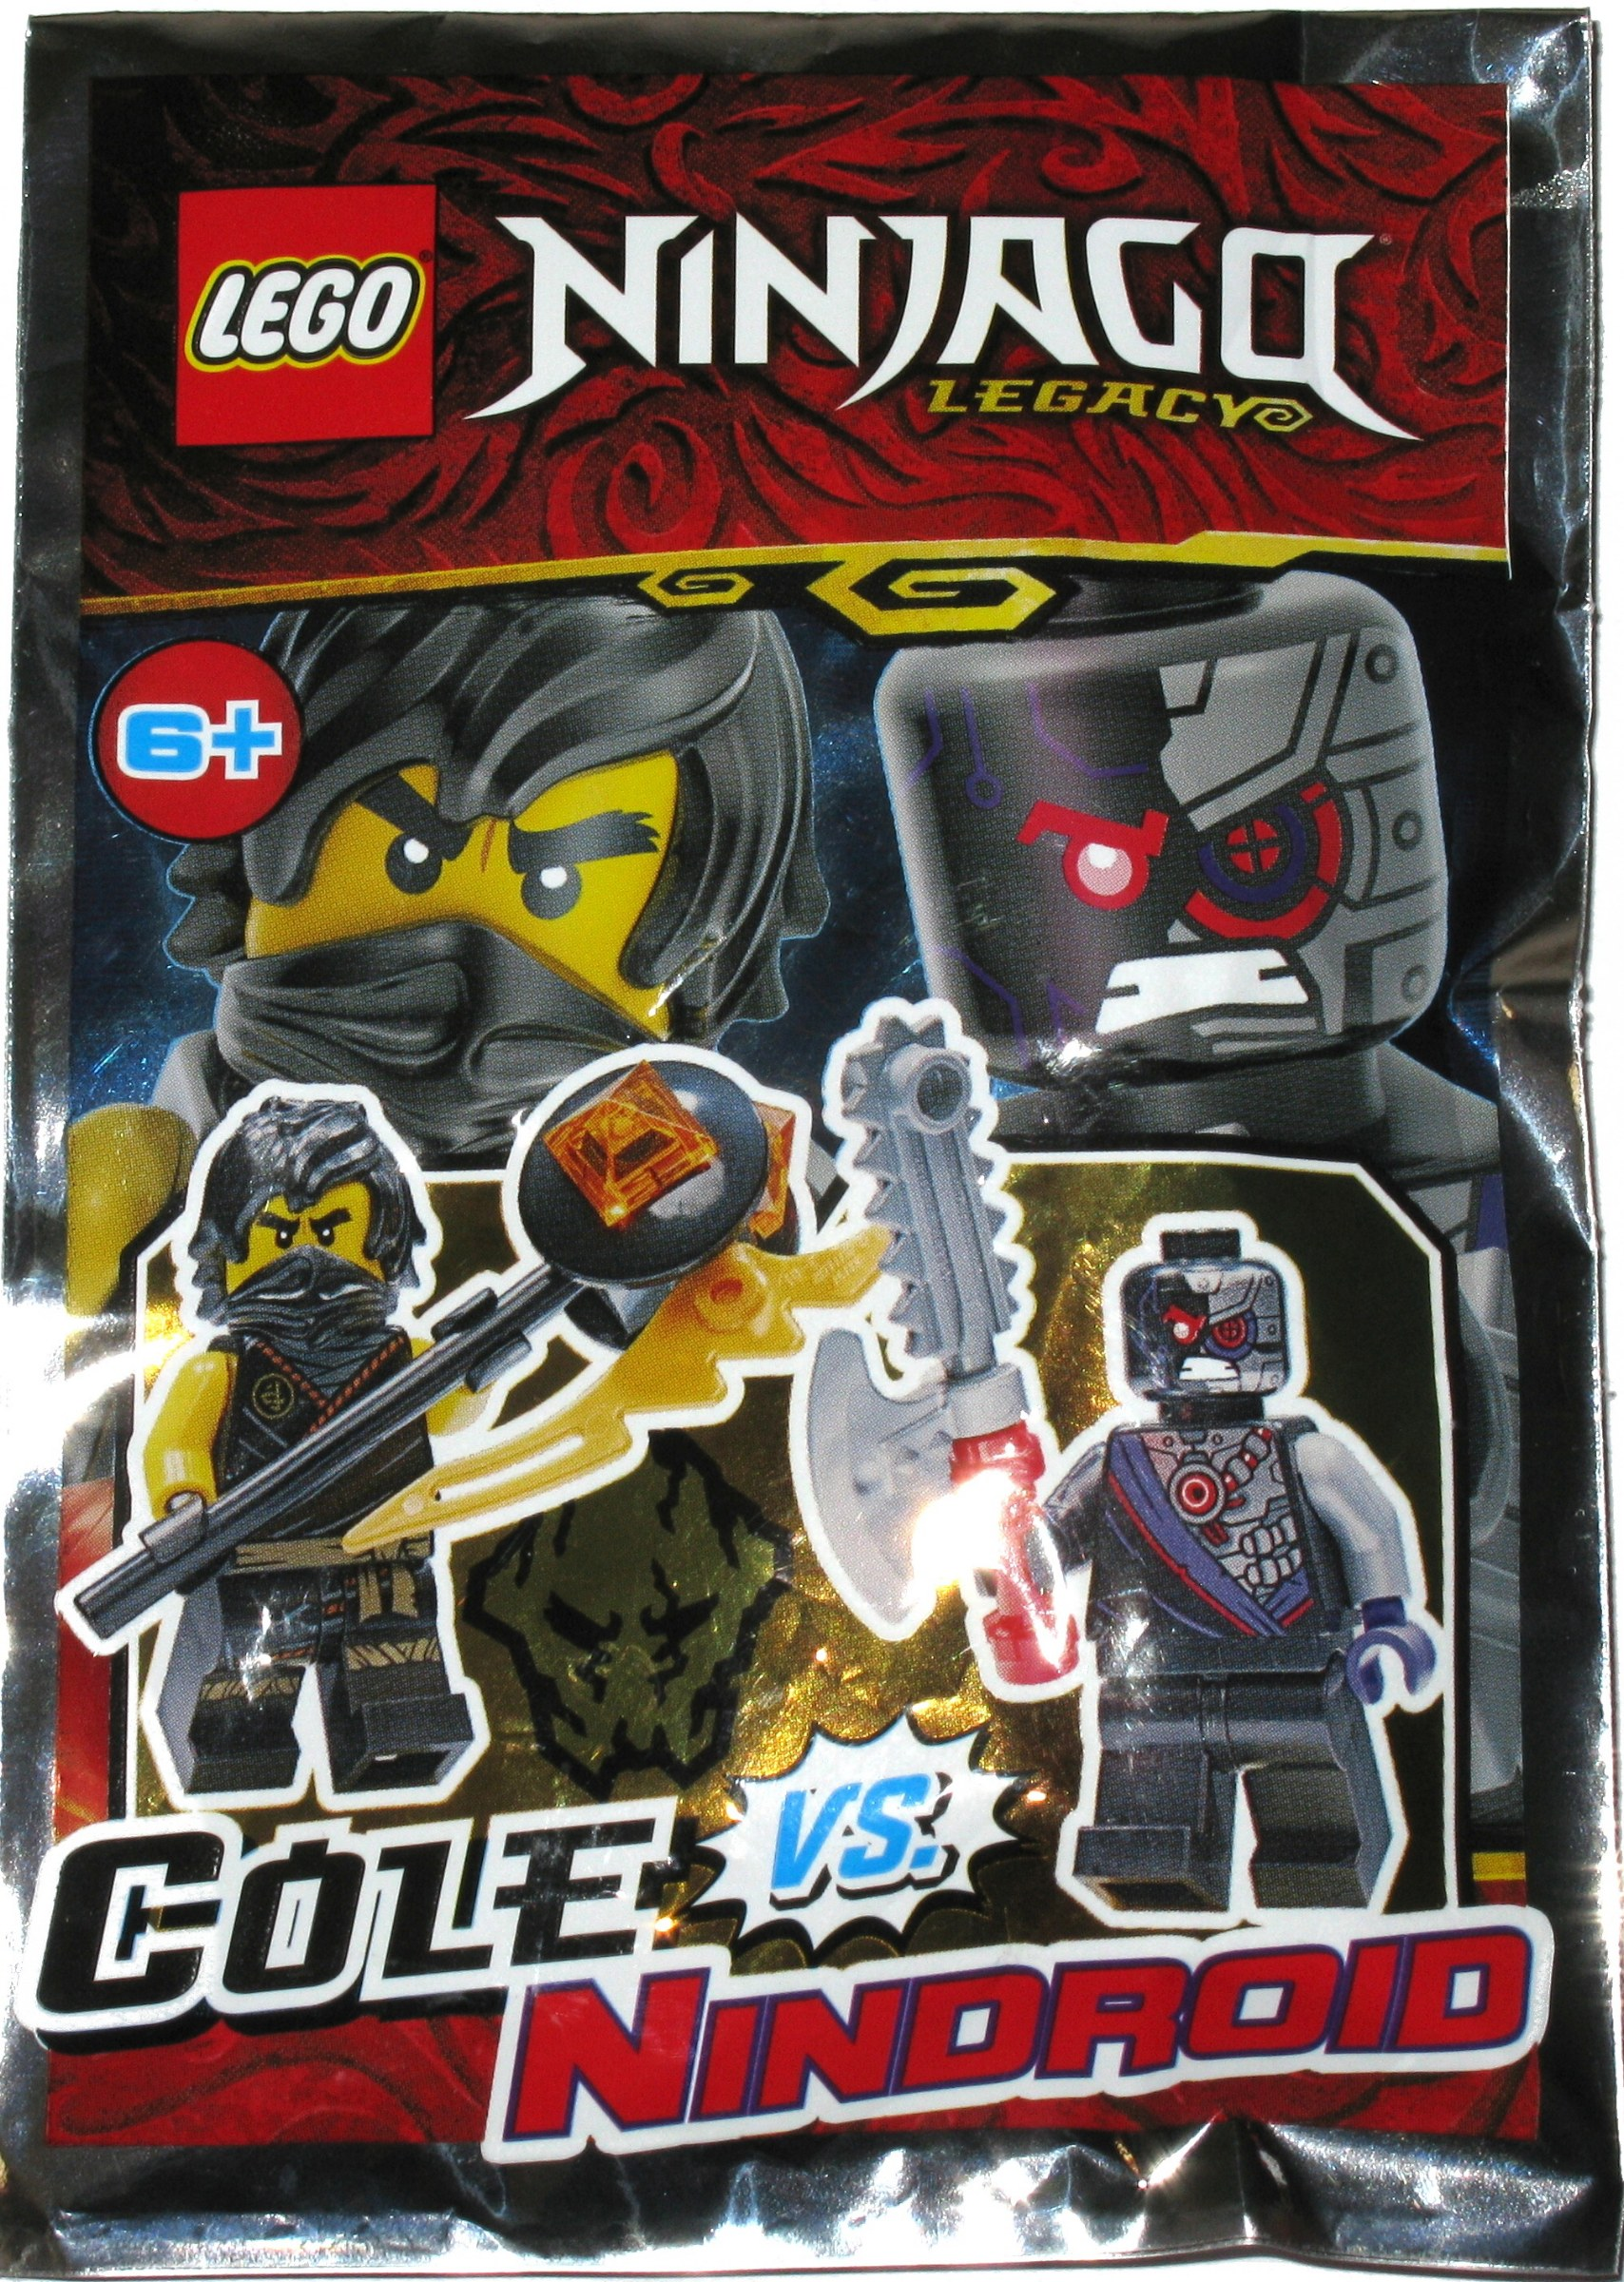 112005 Cole vs. Nindroid